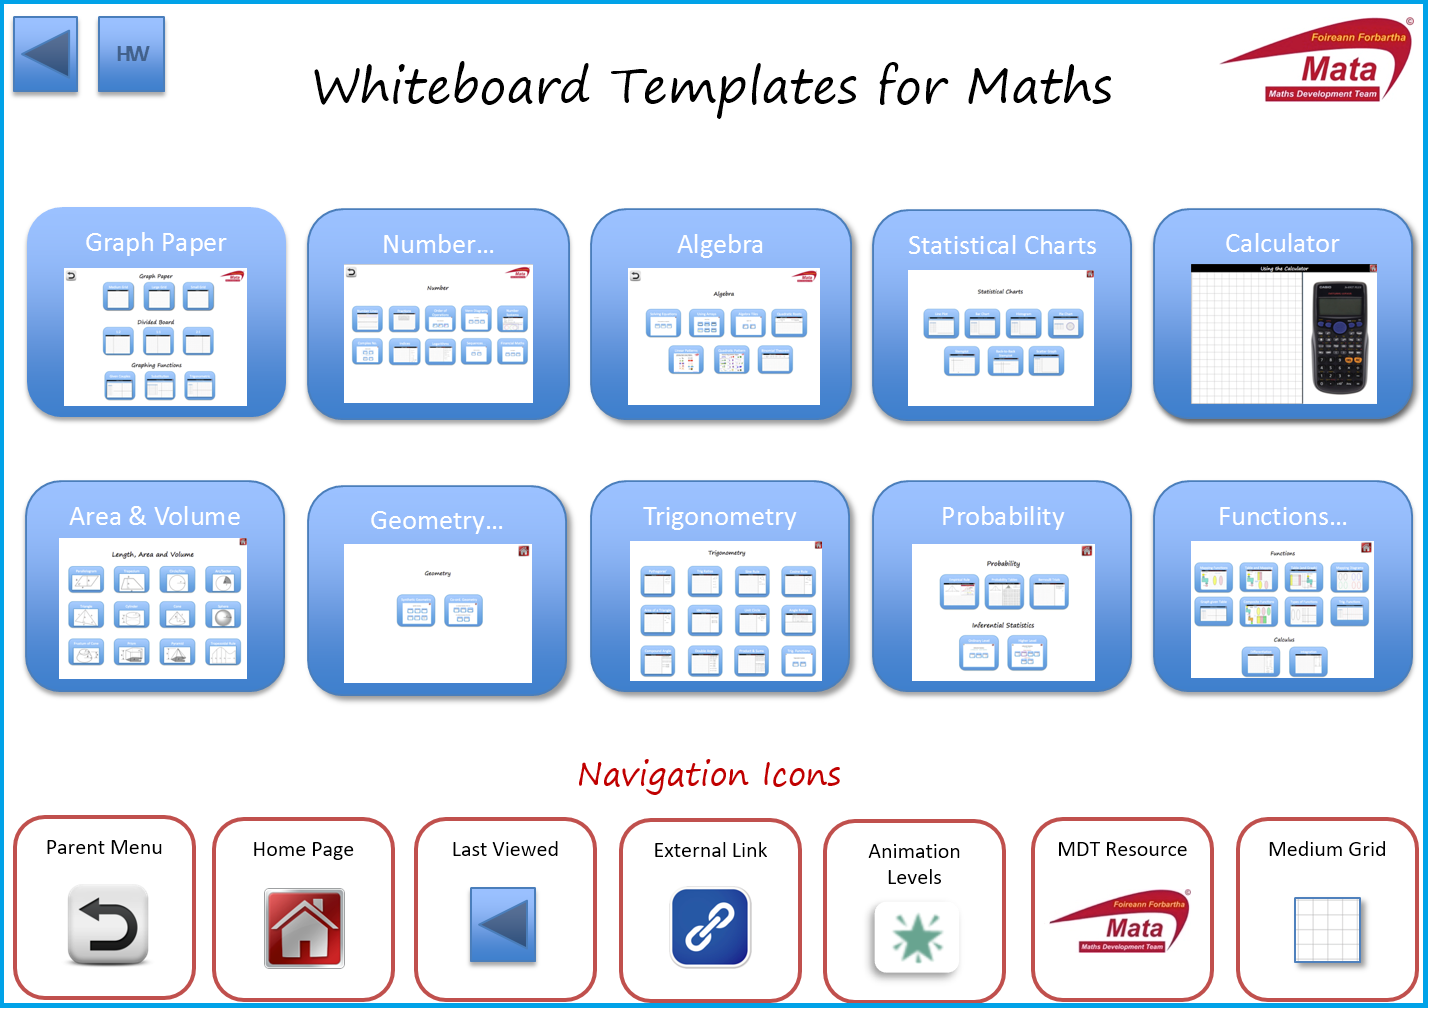 Project maths download whiteboard templates you can download the whiteboard powerpoint templates whiteboard templates 179 toneelgroepblik Choice Image